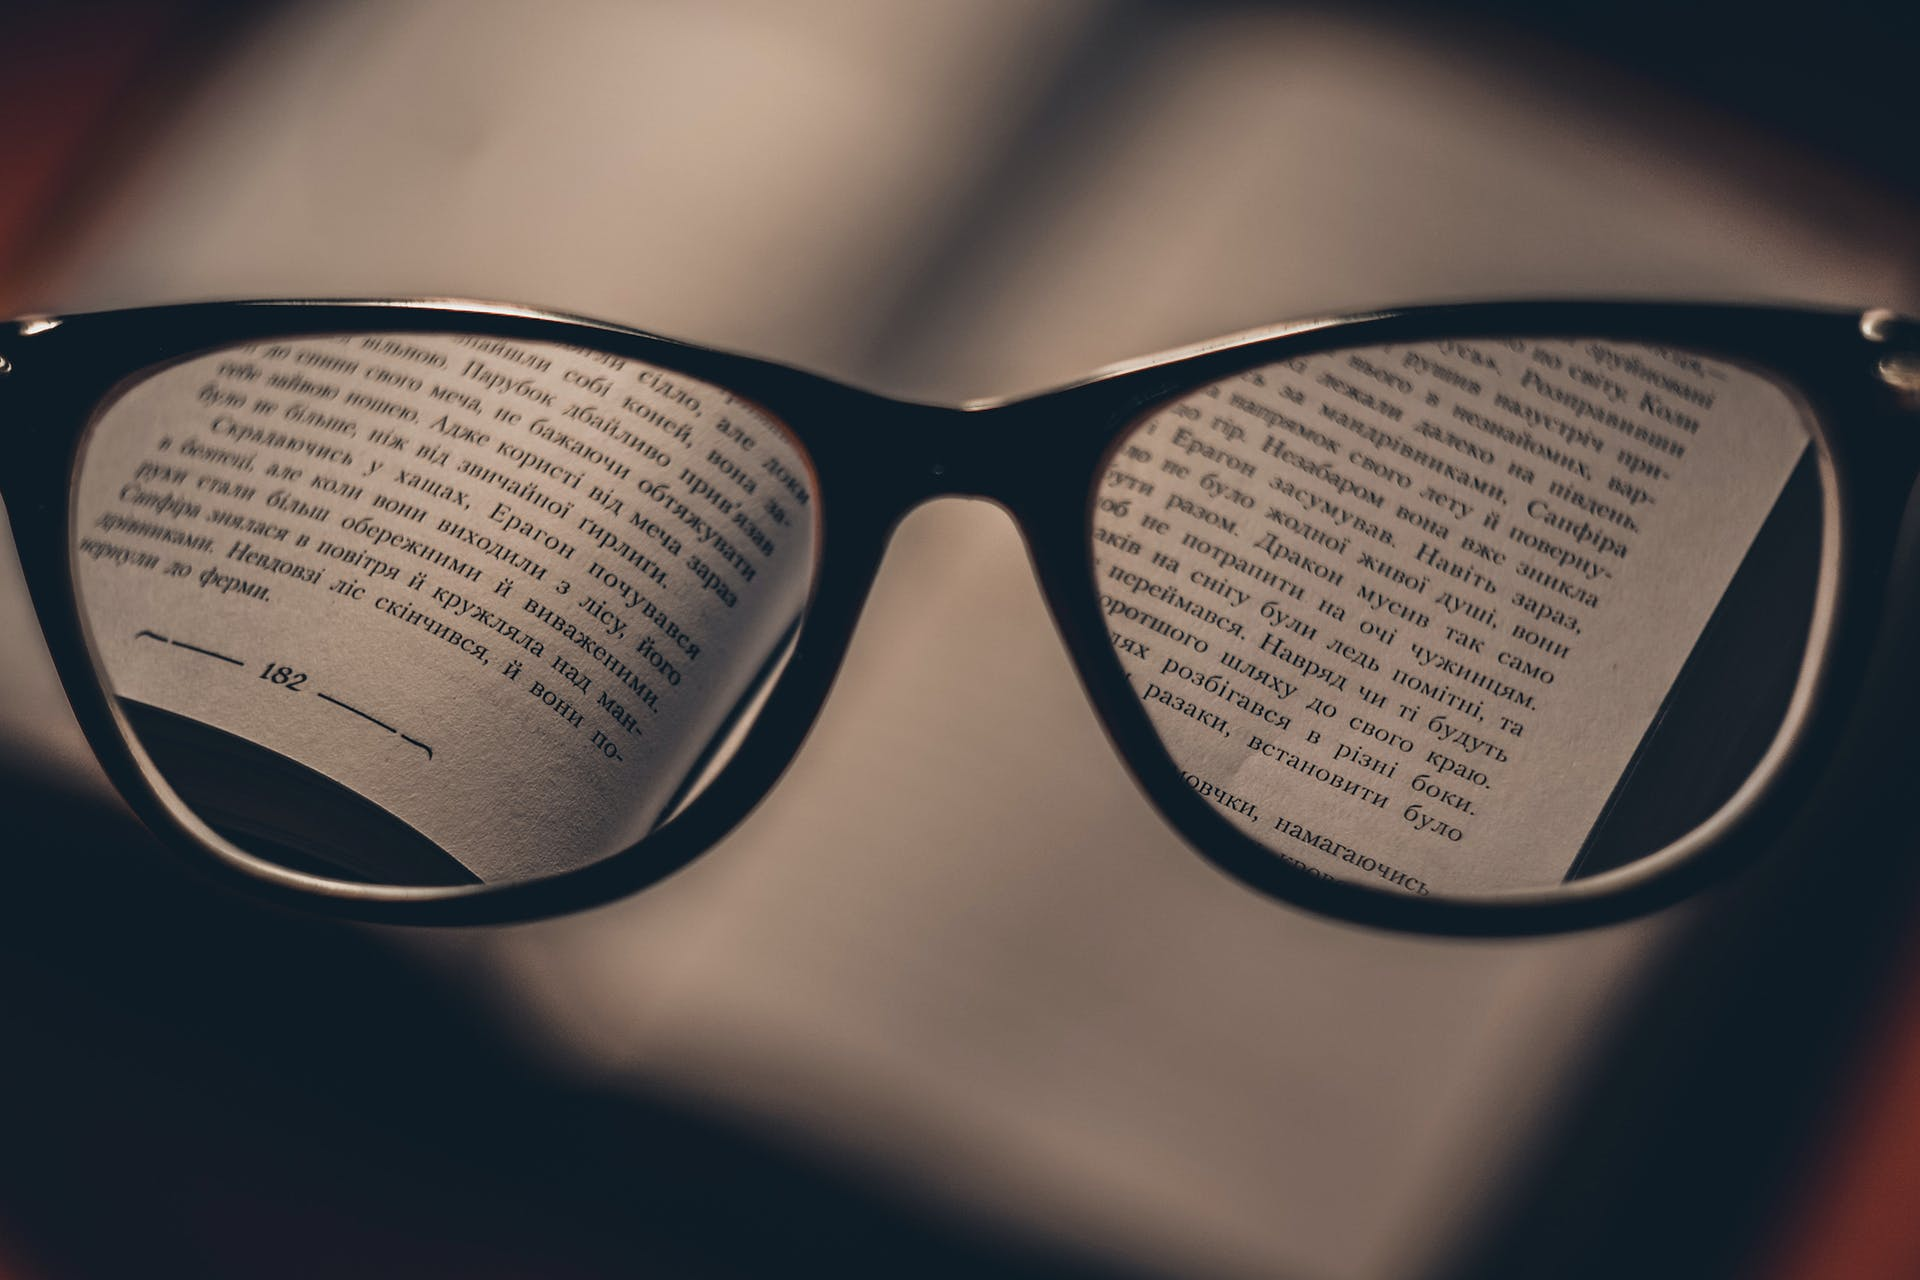 photo of a glasses held in front of an open book